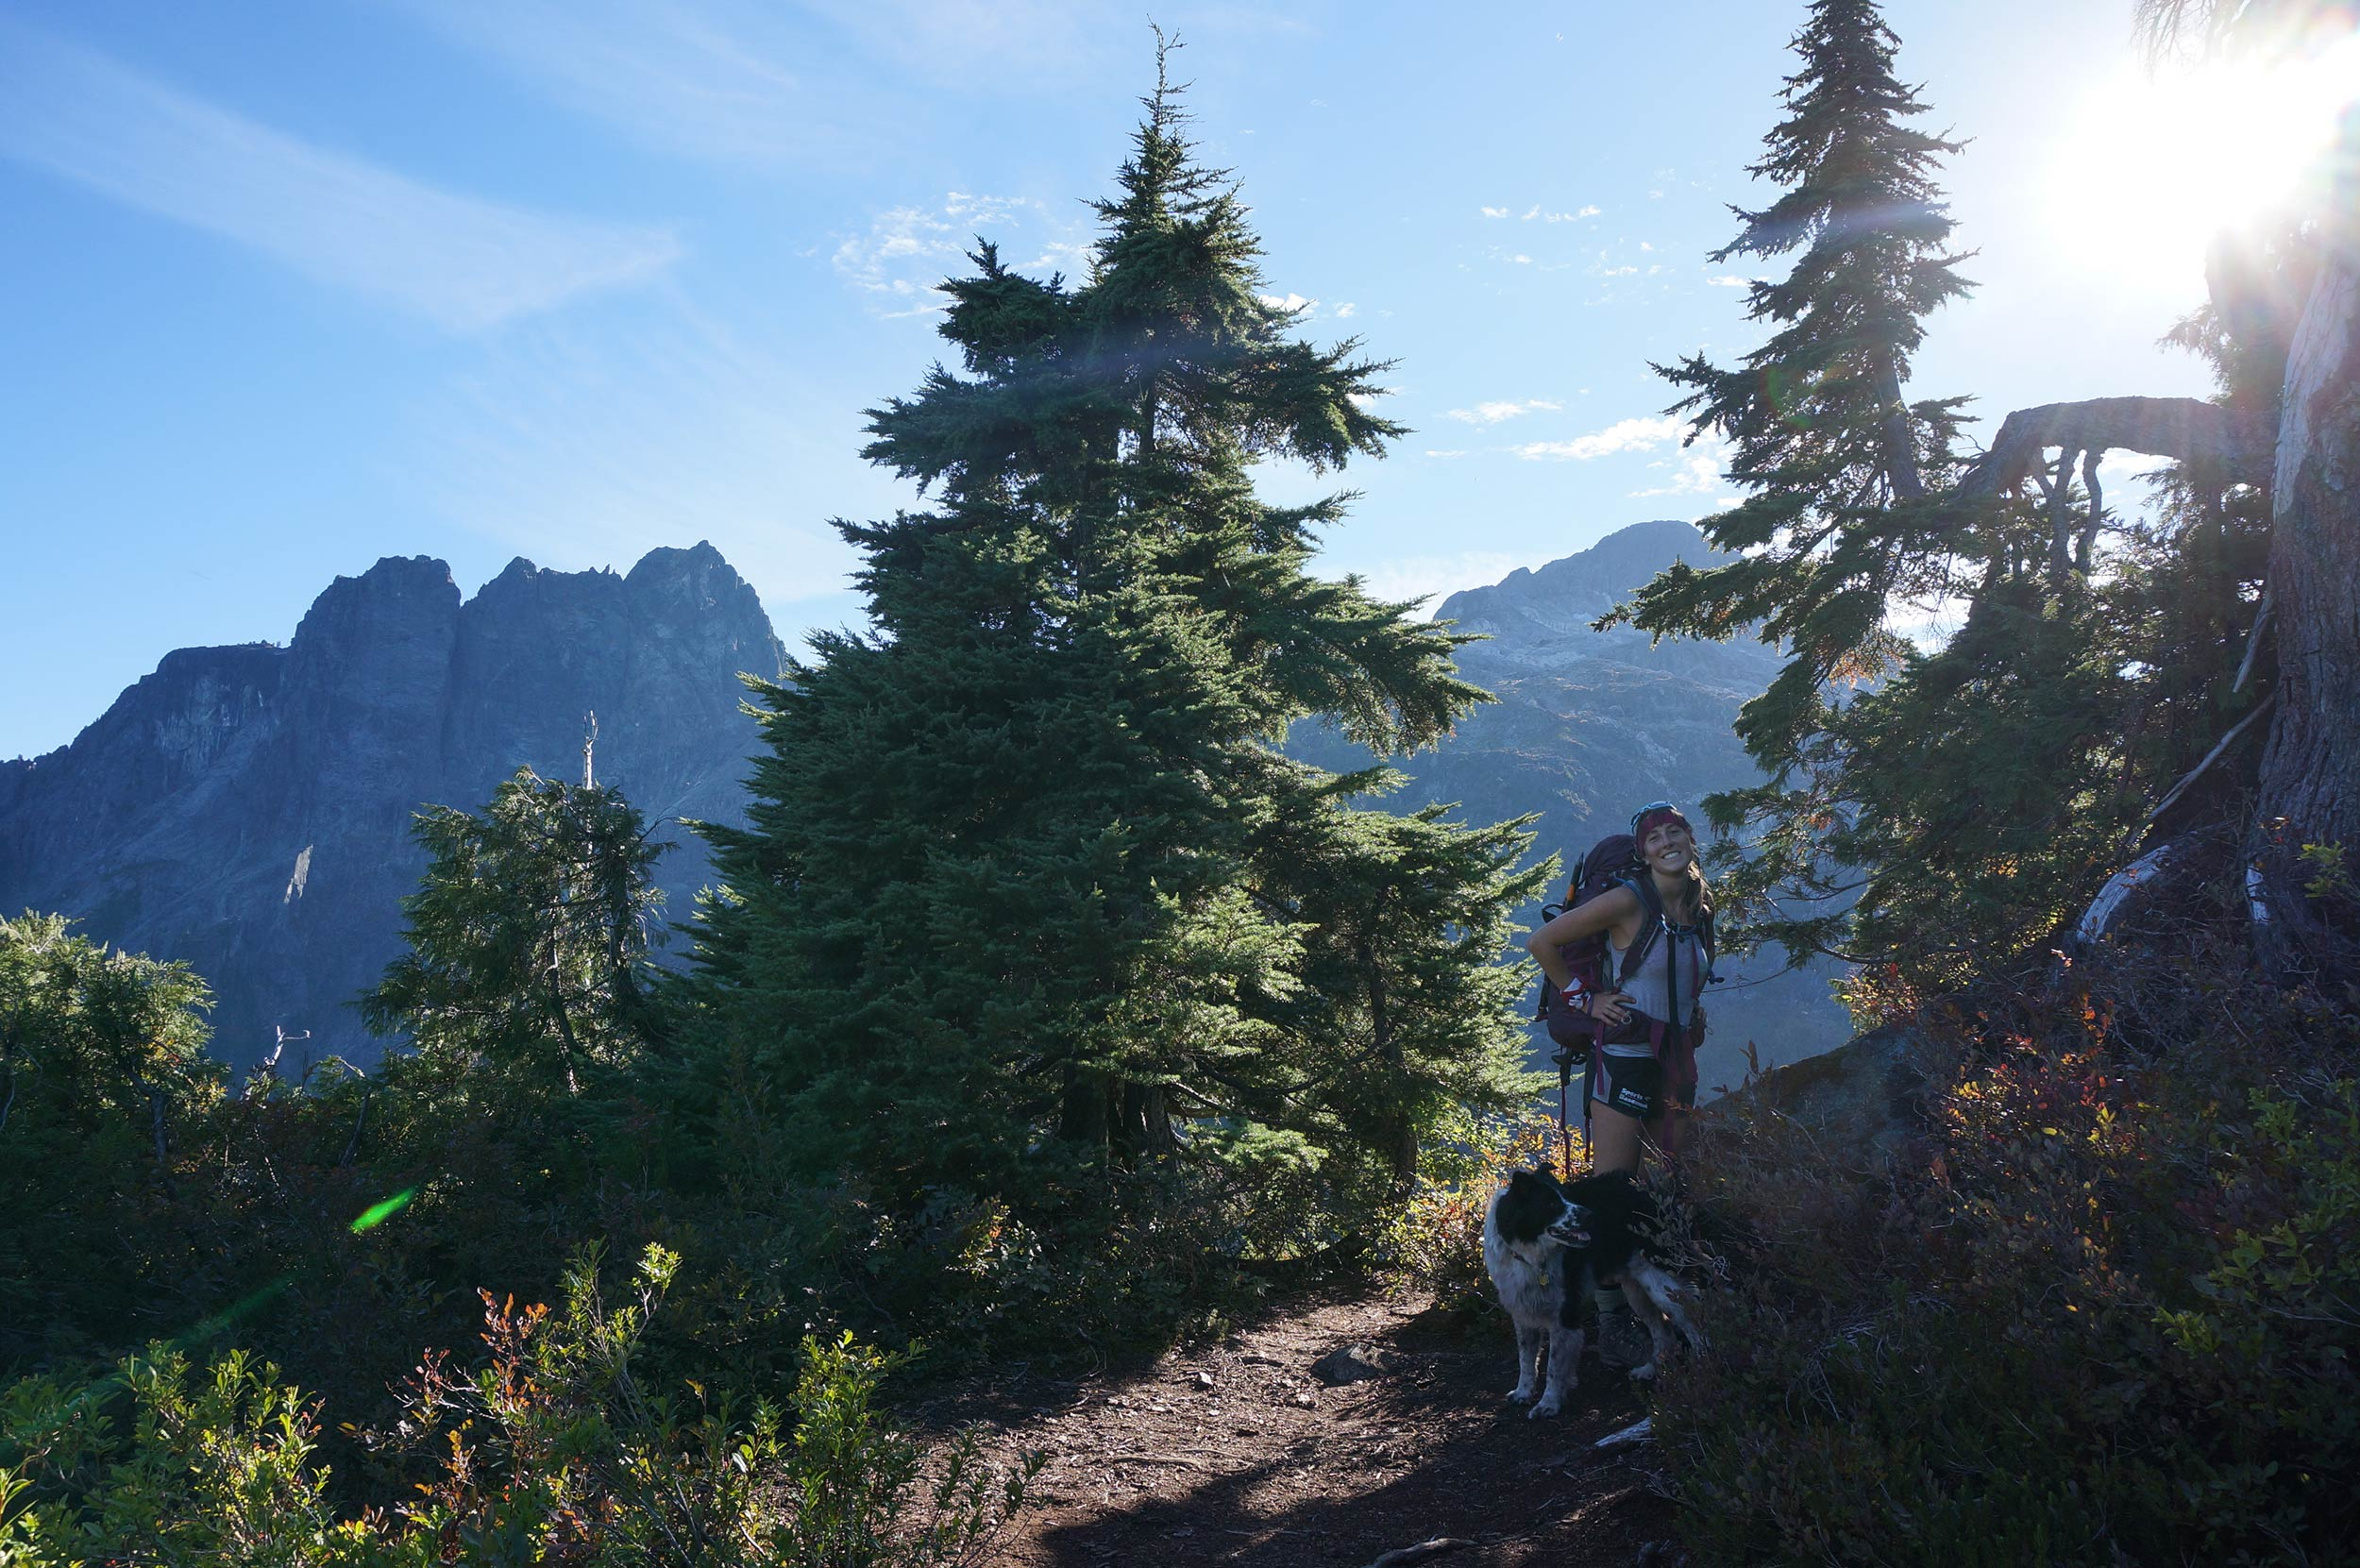 golden_ears_hike_trail.jpg